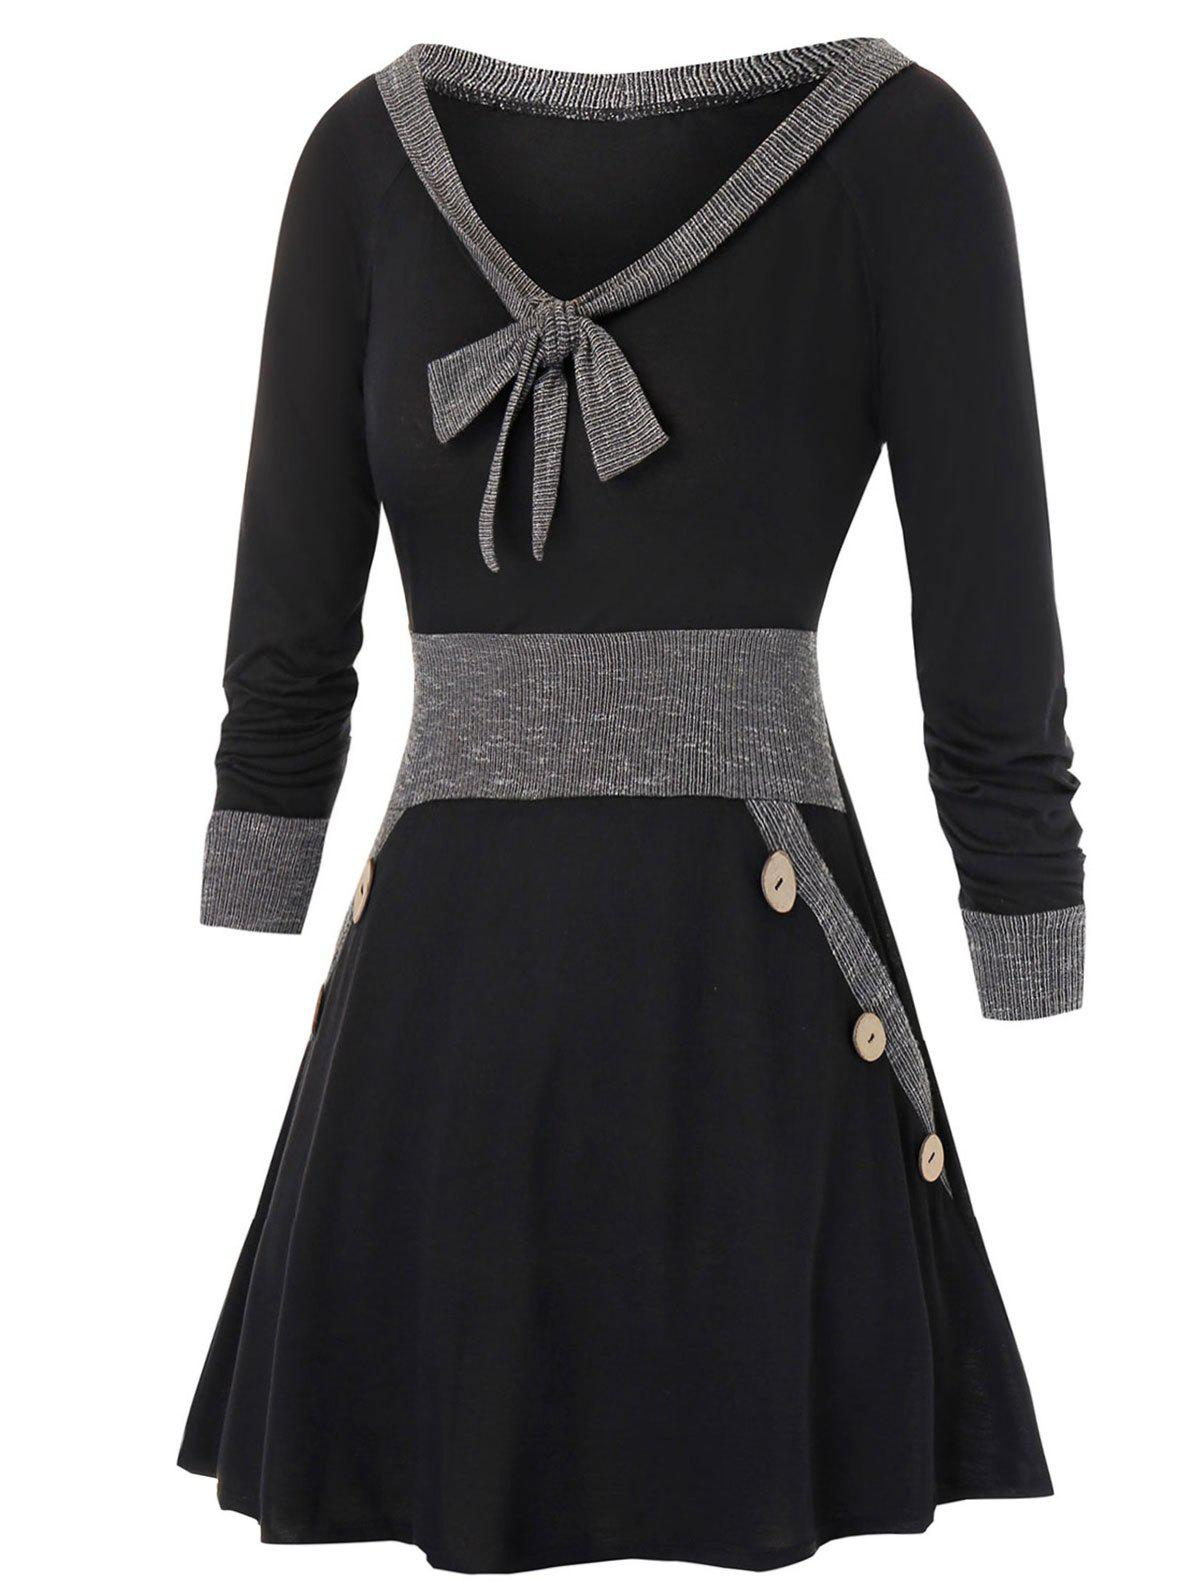 Plus Size Fit And Flare Bowknot Collar Two Tone Dress фото